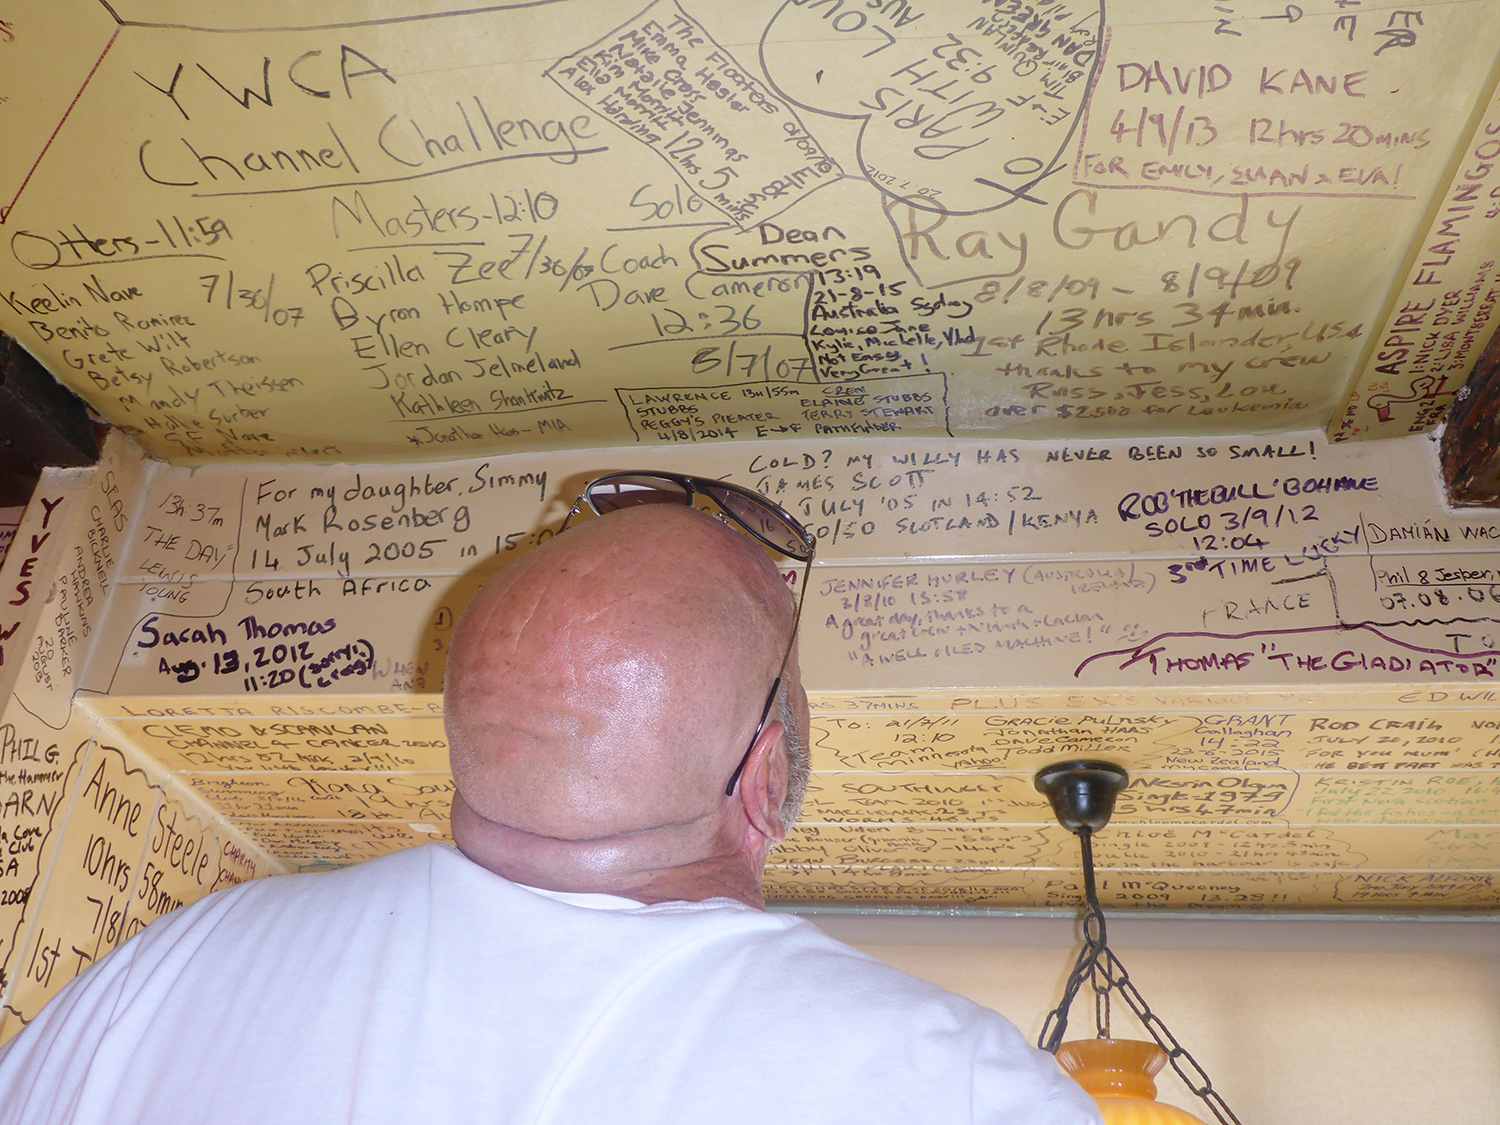 Name signing at White Horse Inn